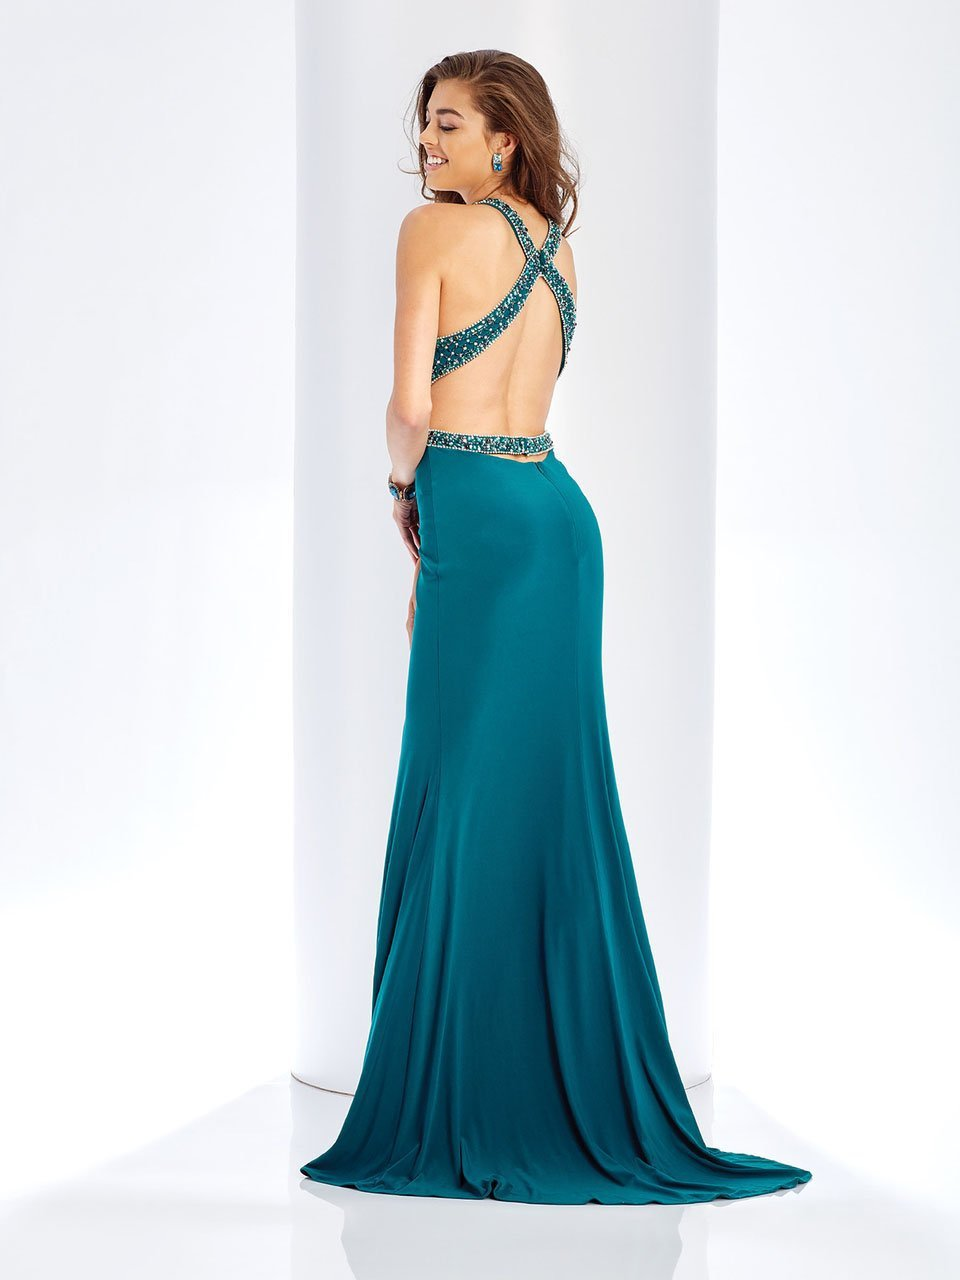 Clarisse - 3512 Embellished Halter Cutout Sheath Dress in Green